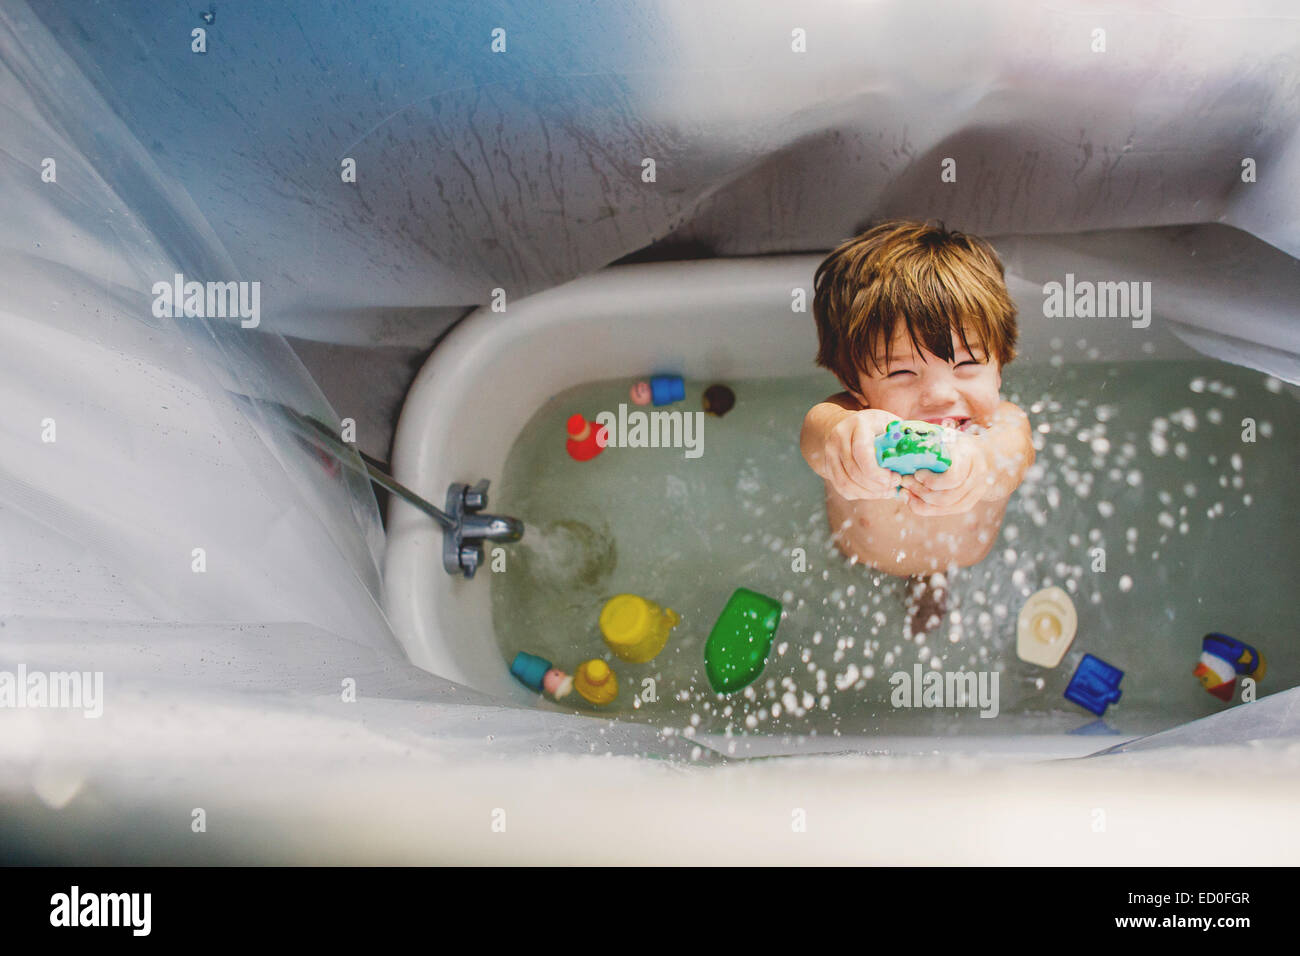 Overhead view of a boy standing in a bath playing with toys Stock Photo